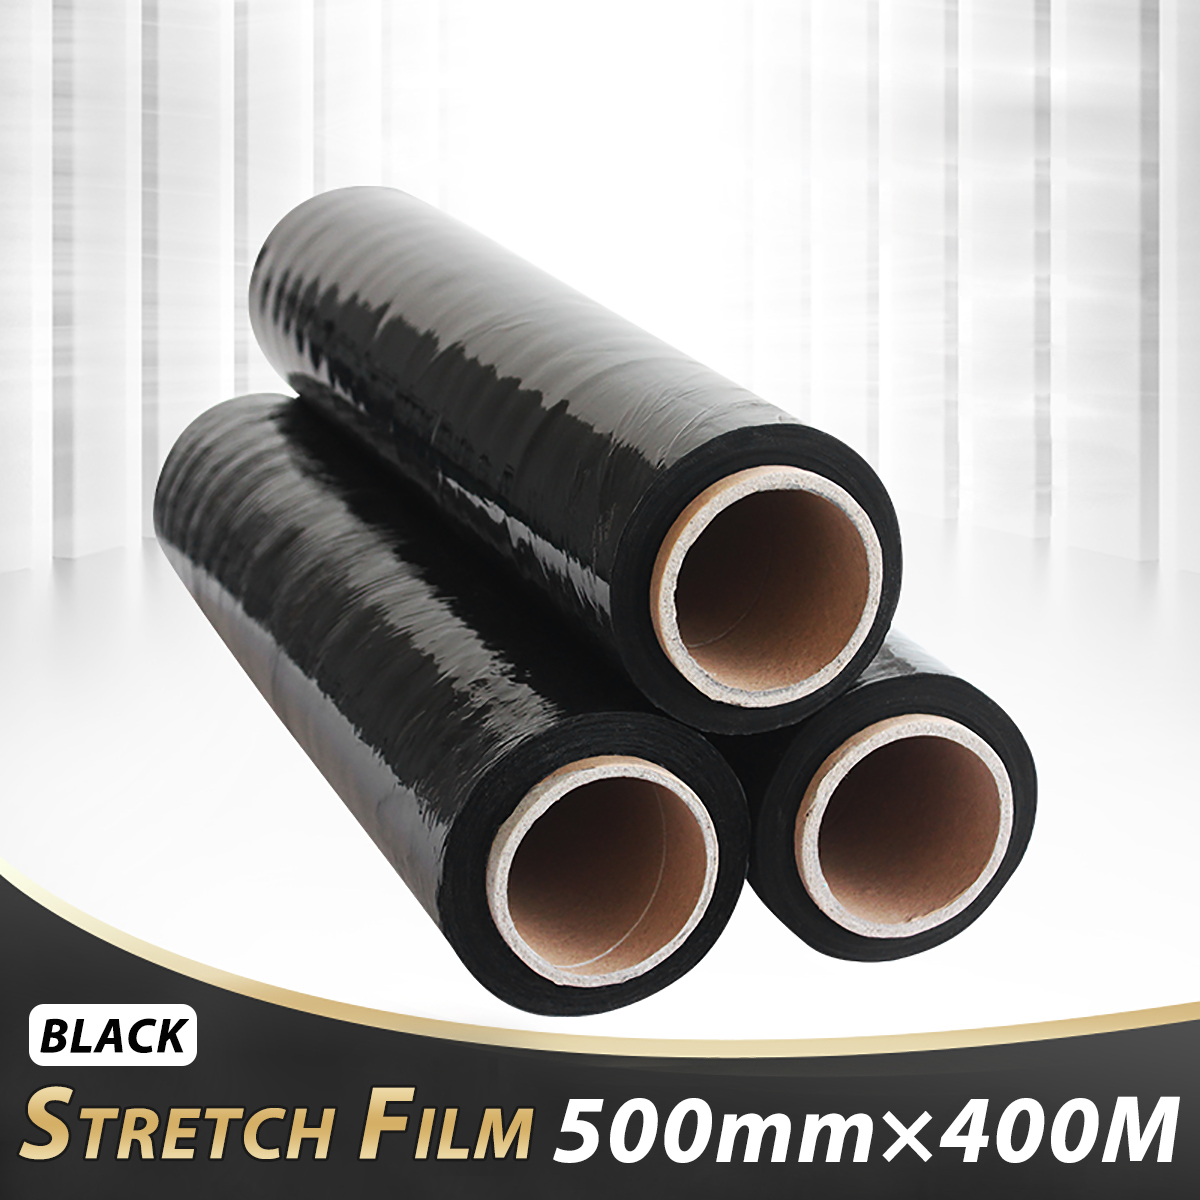 1Pcs 500mmx400M Black Stretch Film PE For Carton Pallet Shrink Wrap Packing китай vd 207 11a яйцо